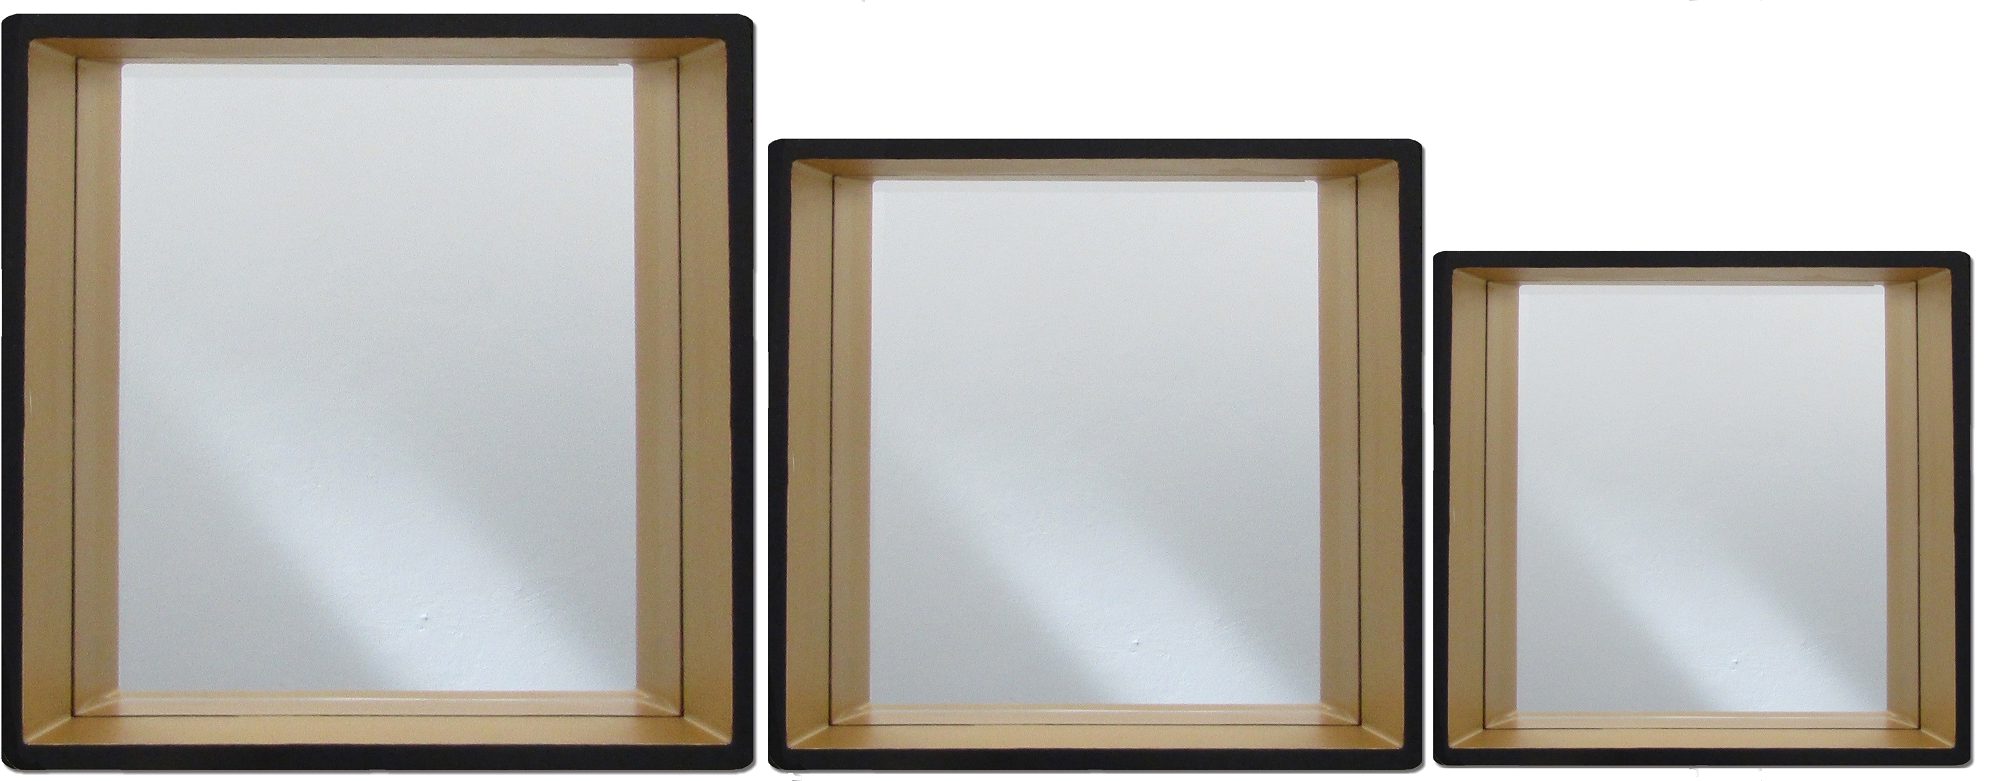 Recessed square mirrors 530 430 330